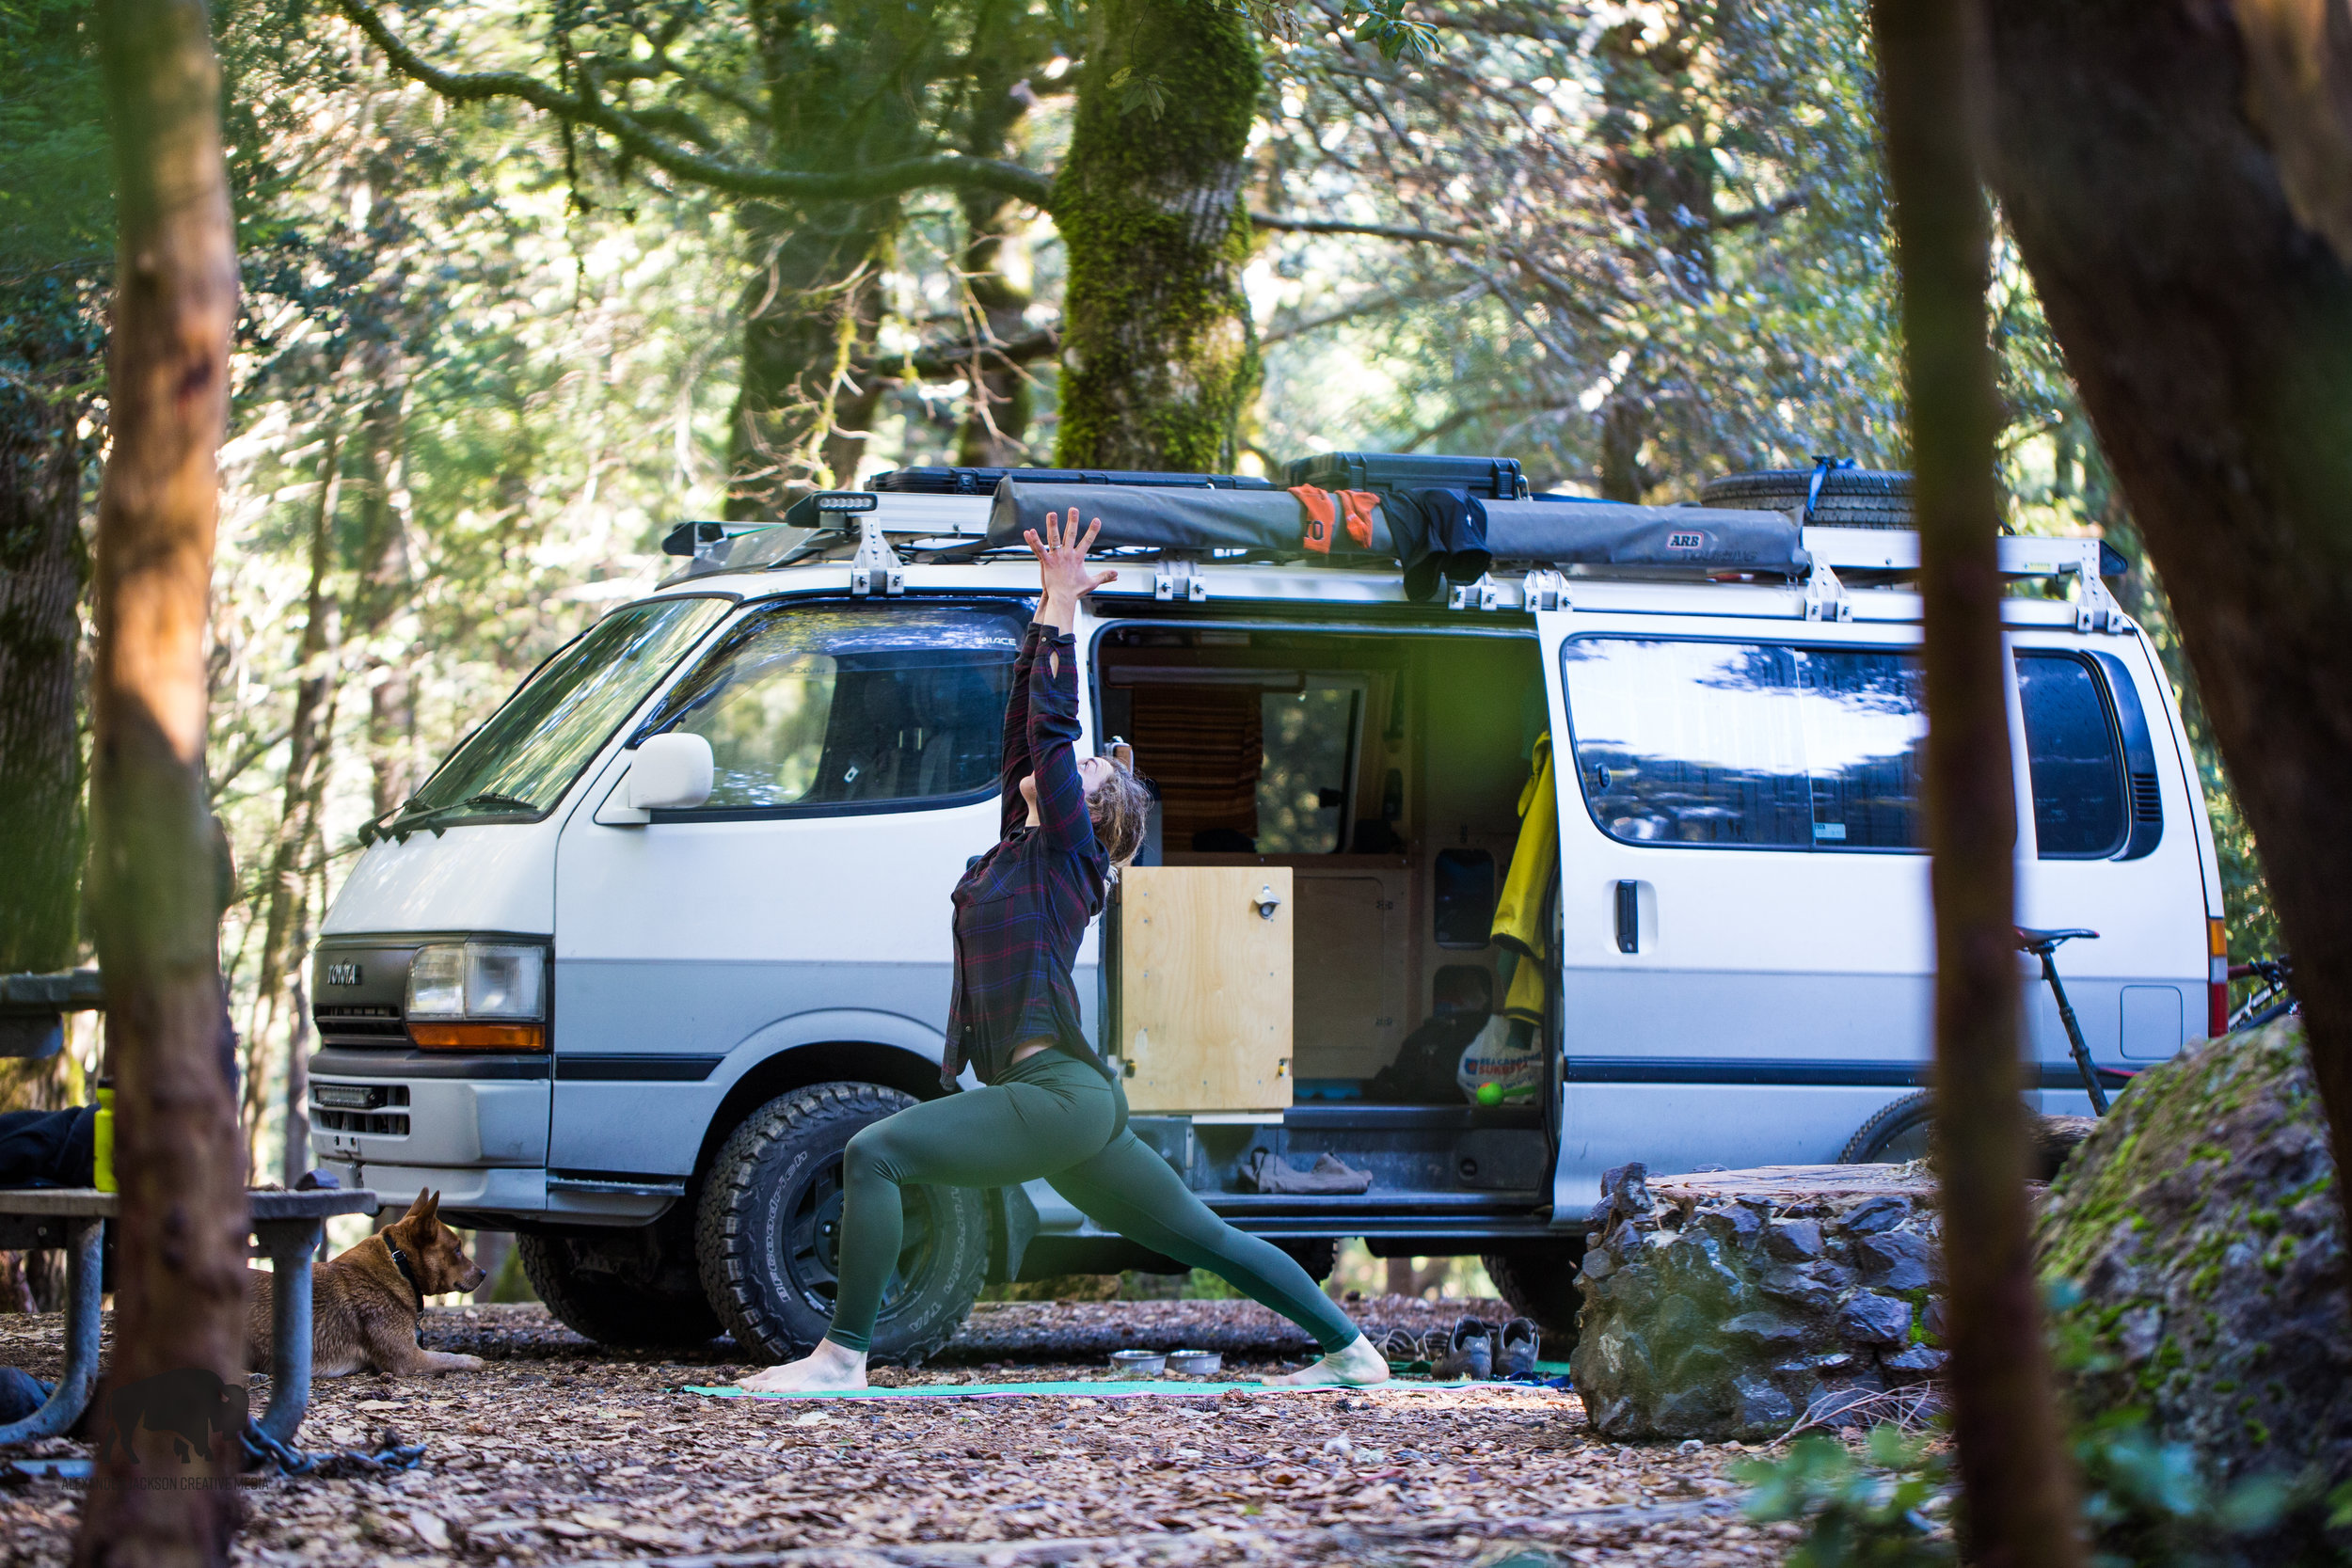 vanlife 3 (14 of 26).jpg